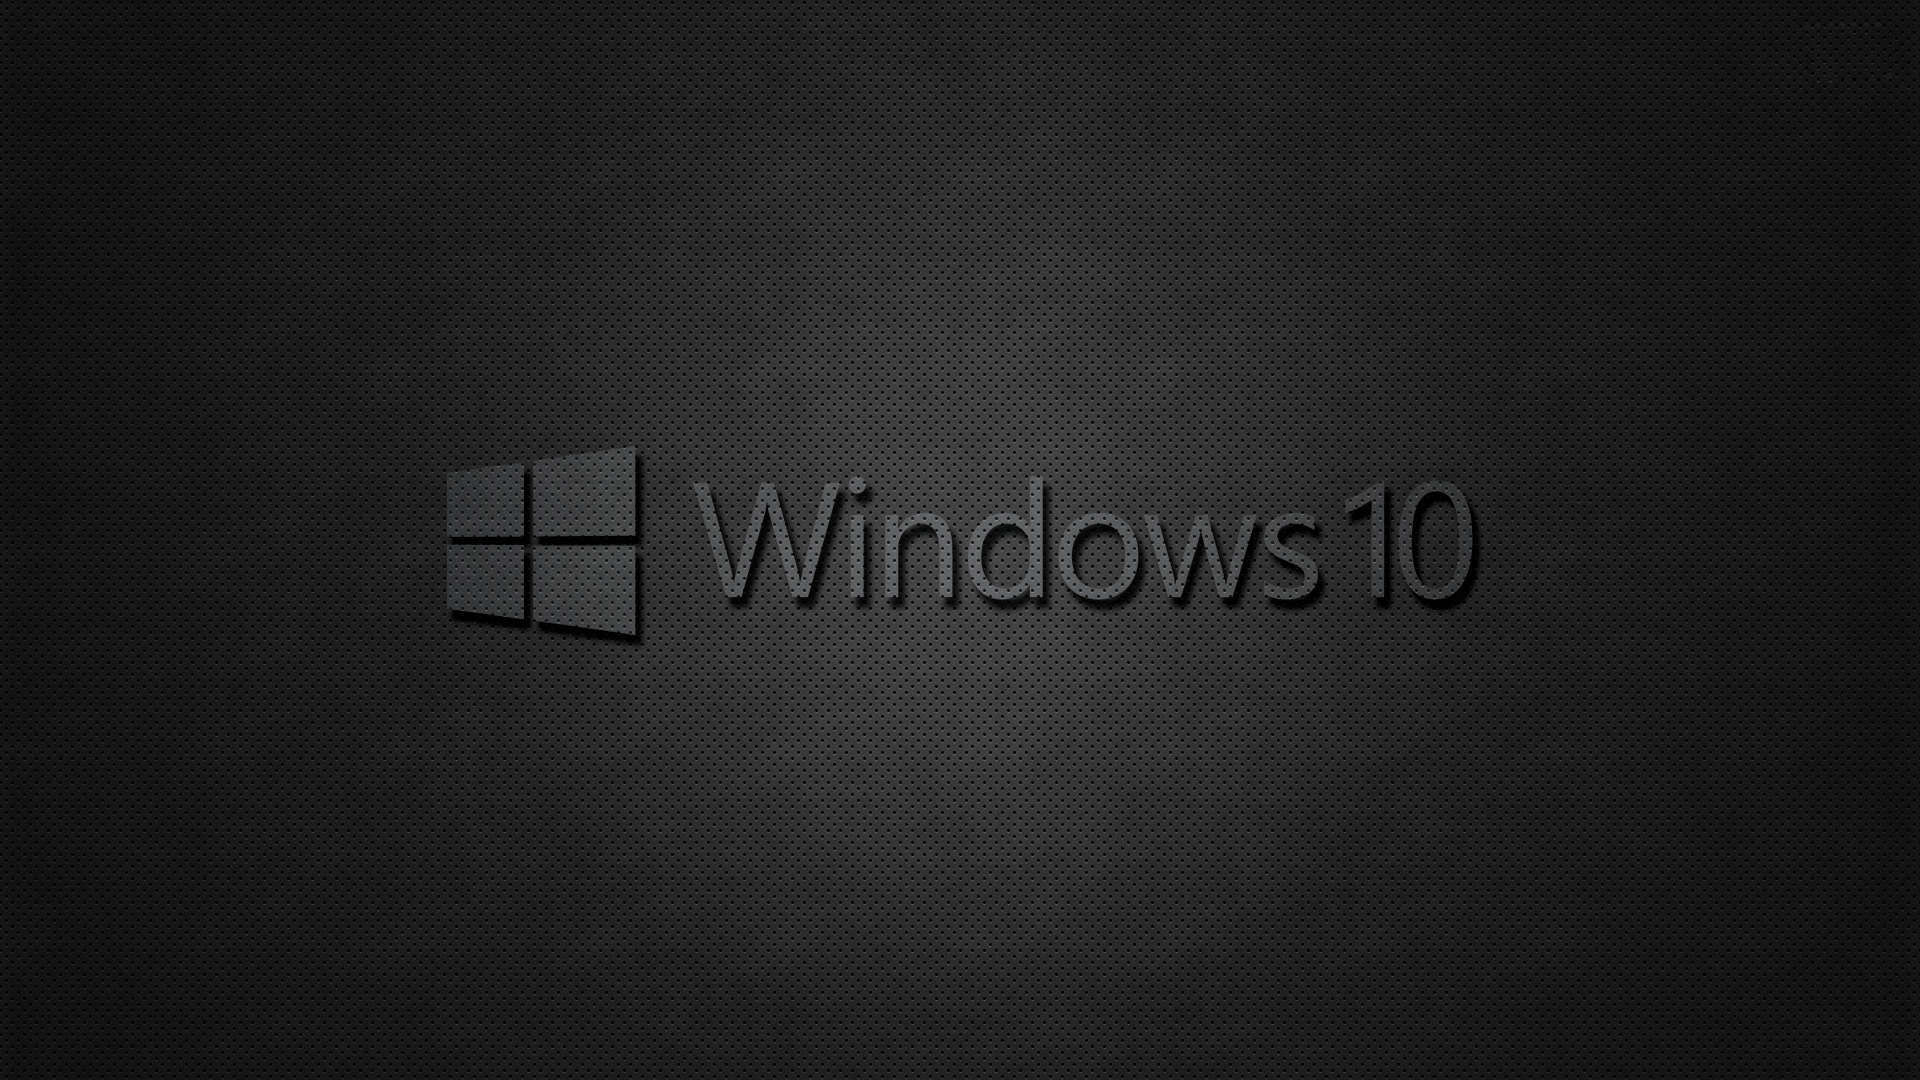 Black Windows 10 Hd Wallpapers On Wallpaperdog